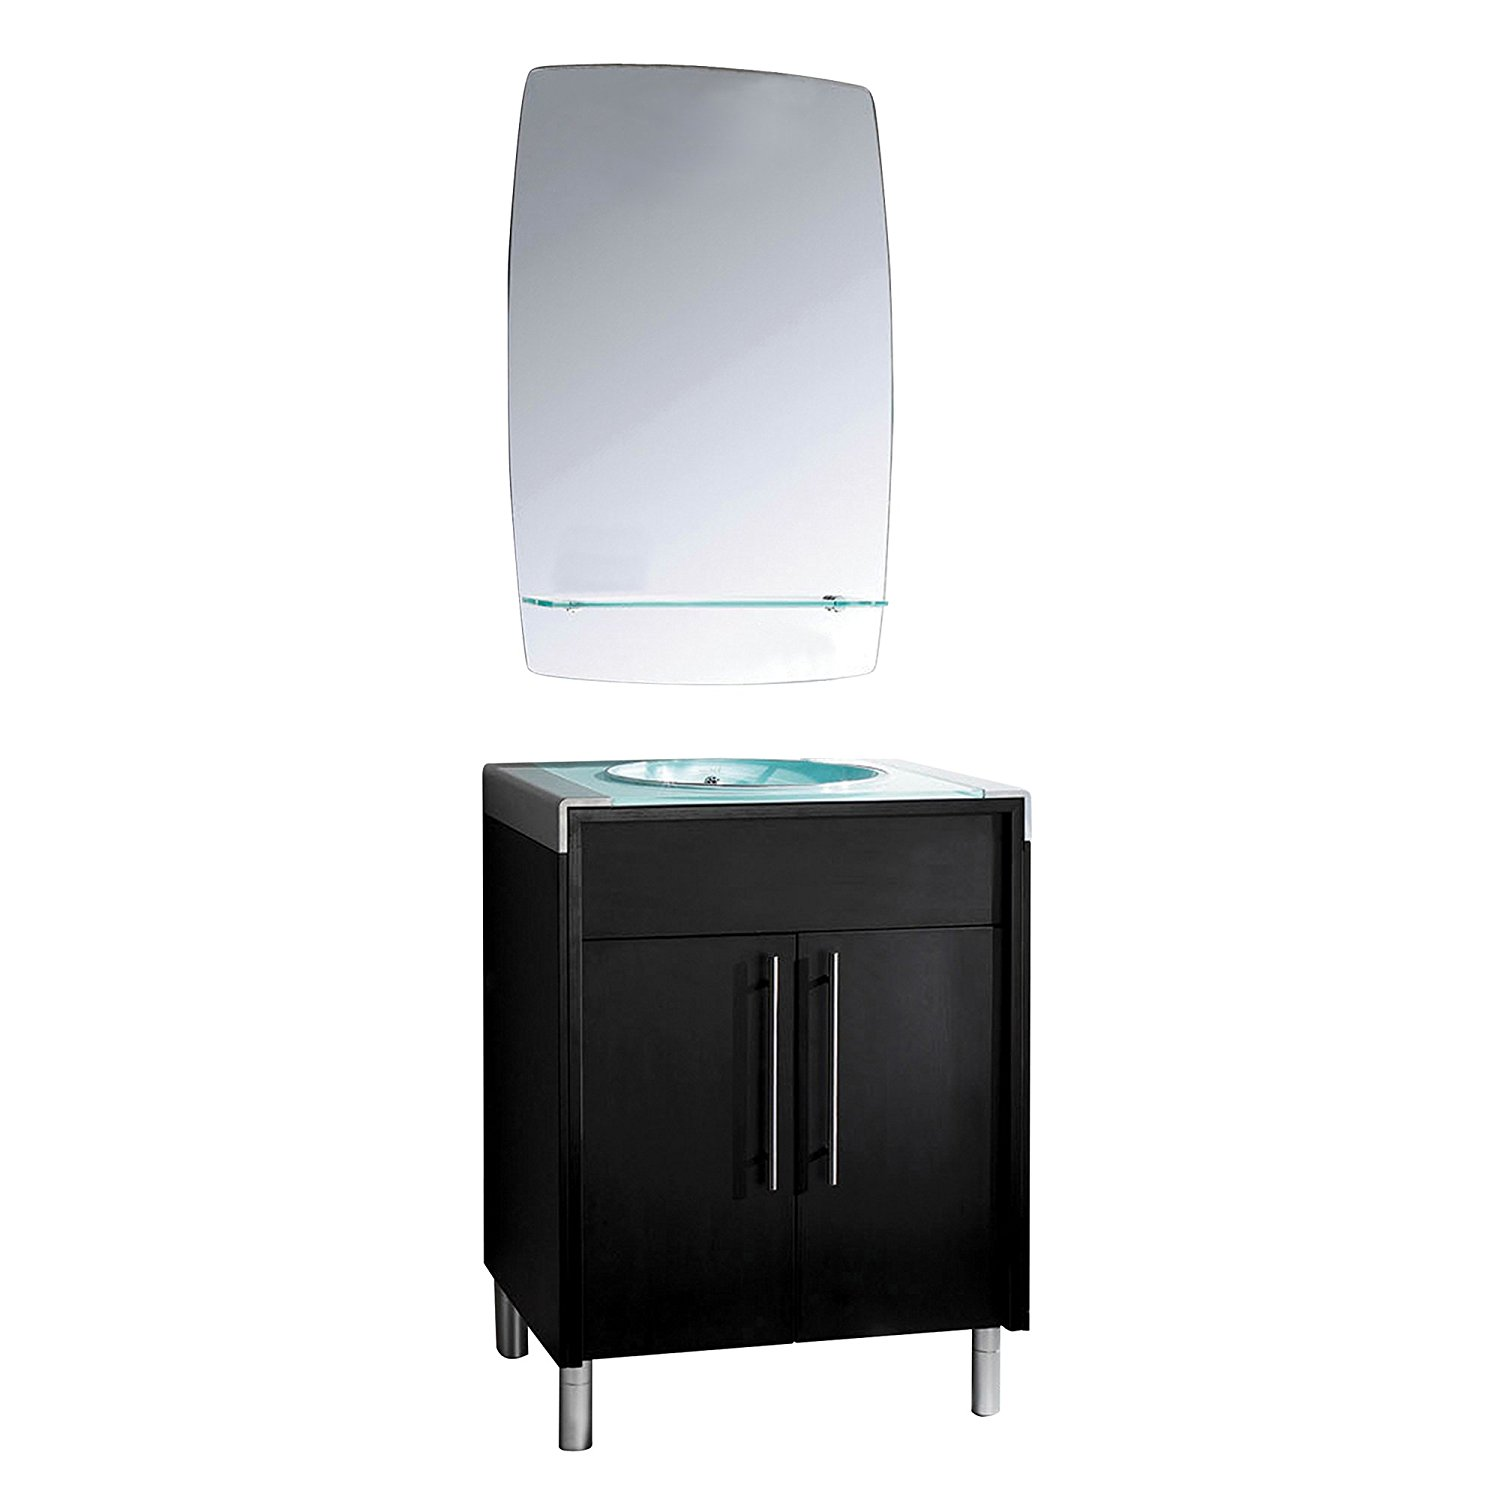 Yosemite Home Decor RASSGA12-44A 25.5-Inch Single Vanity with Mirror and Frosted Glass Basin